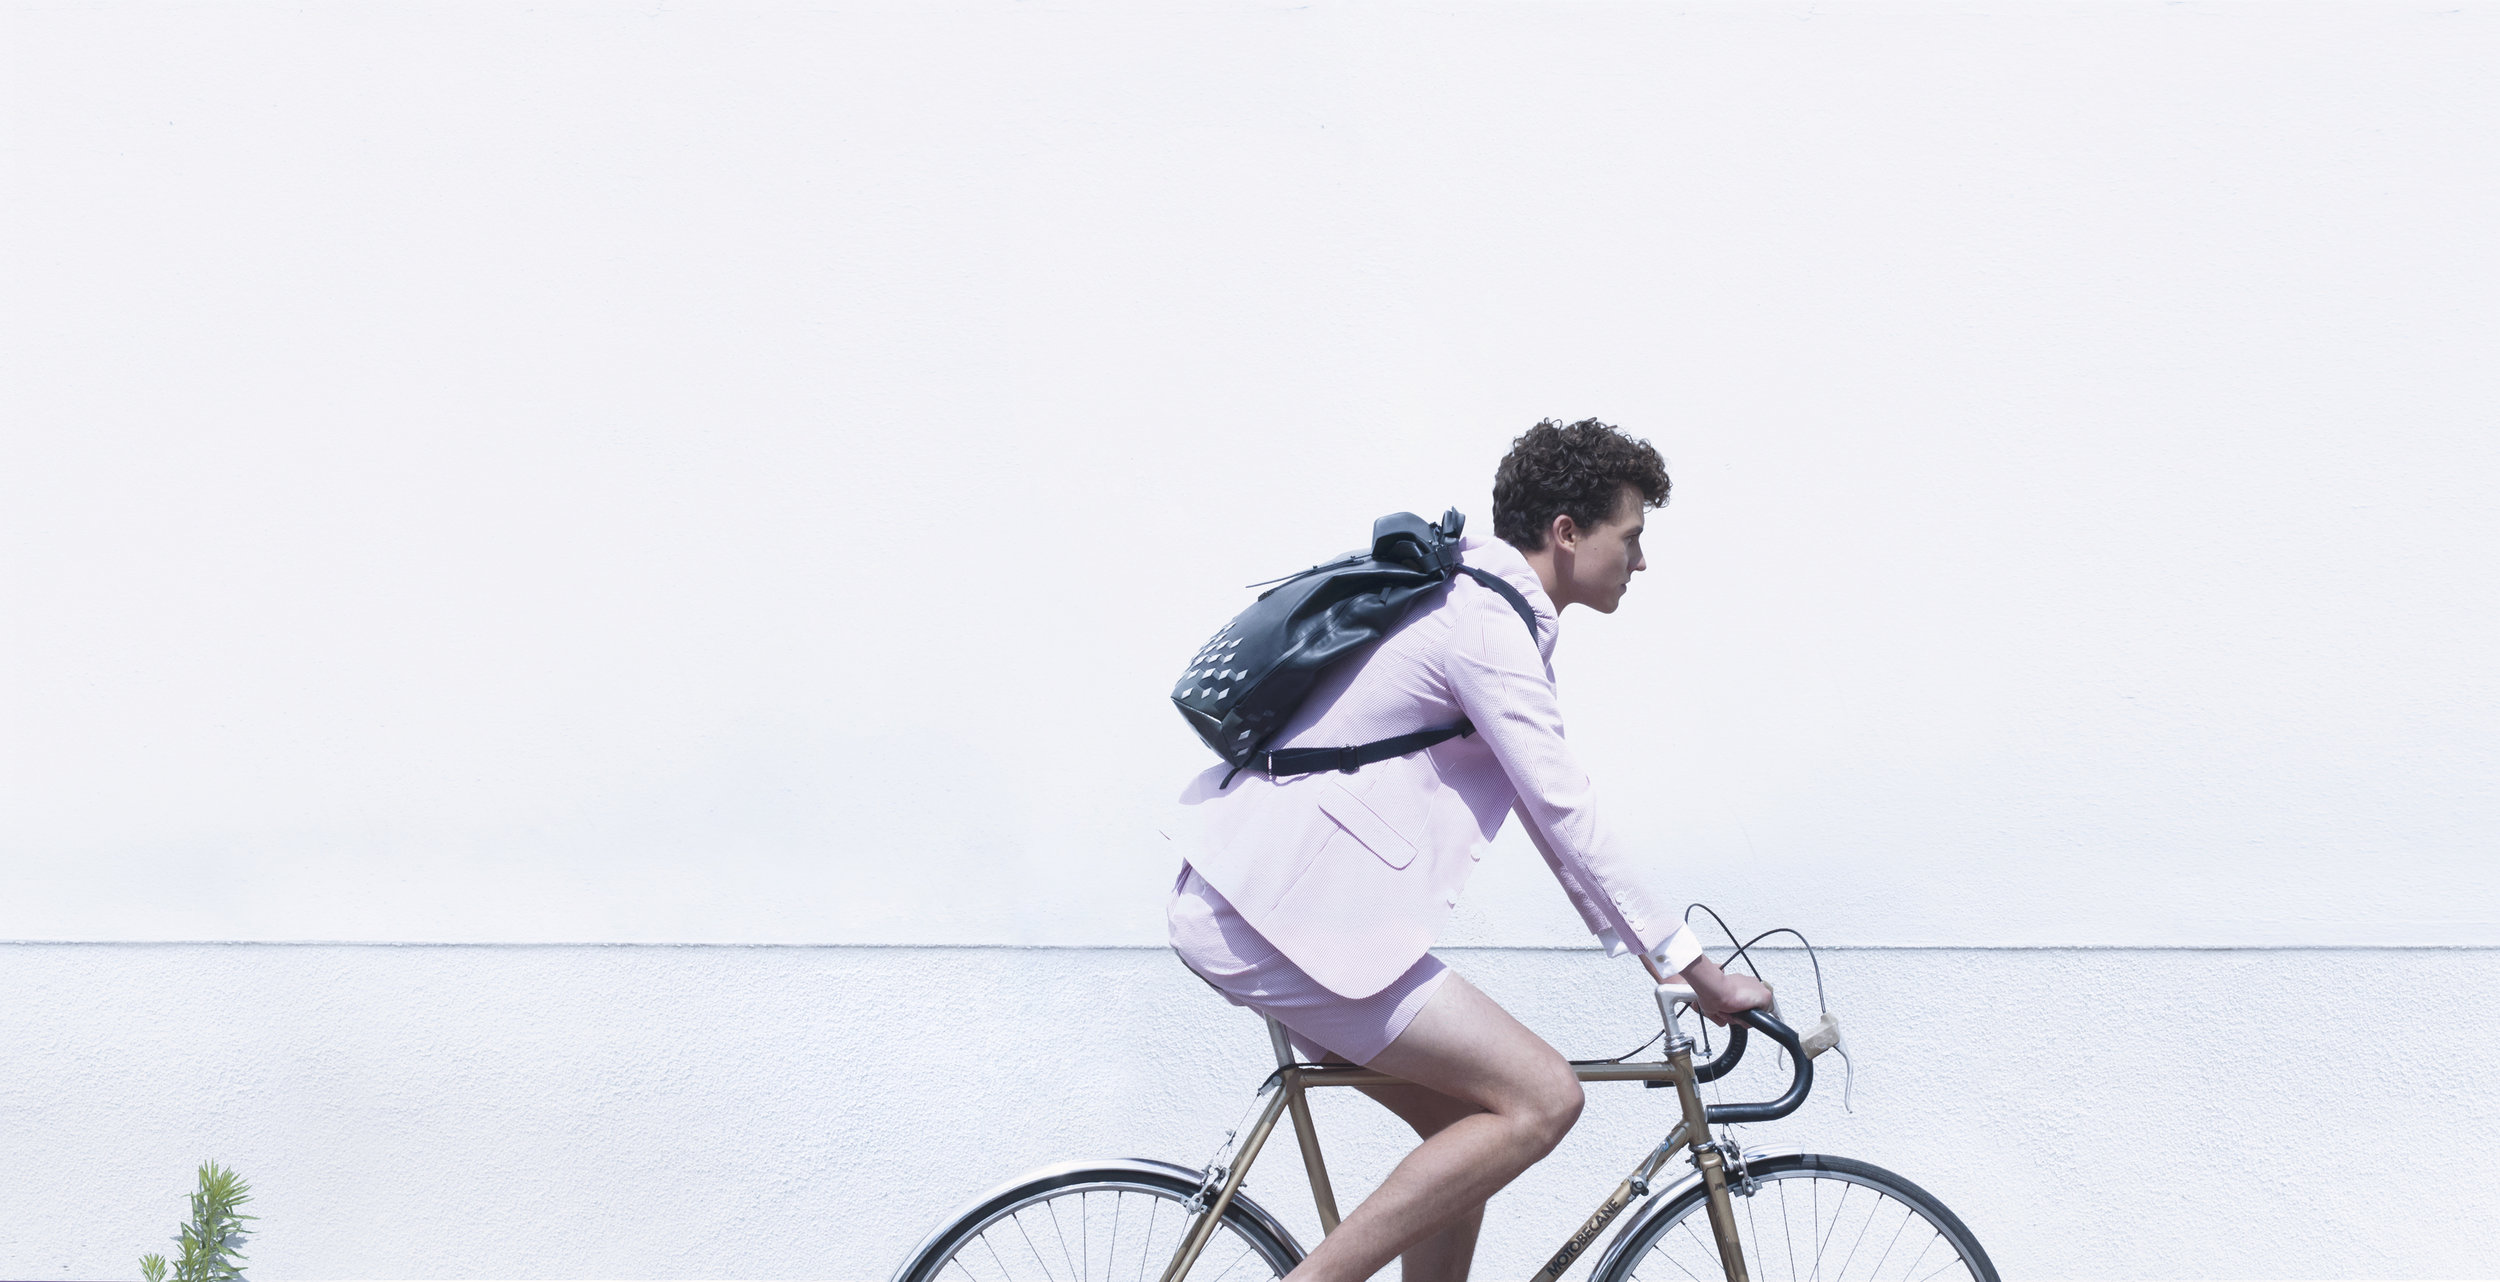 The cyclist_collection1_claude03.jpg